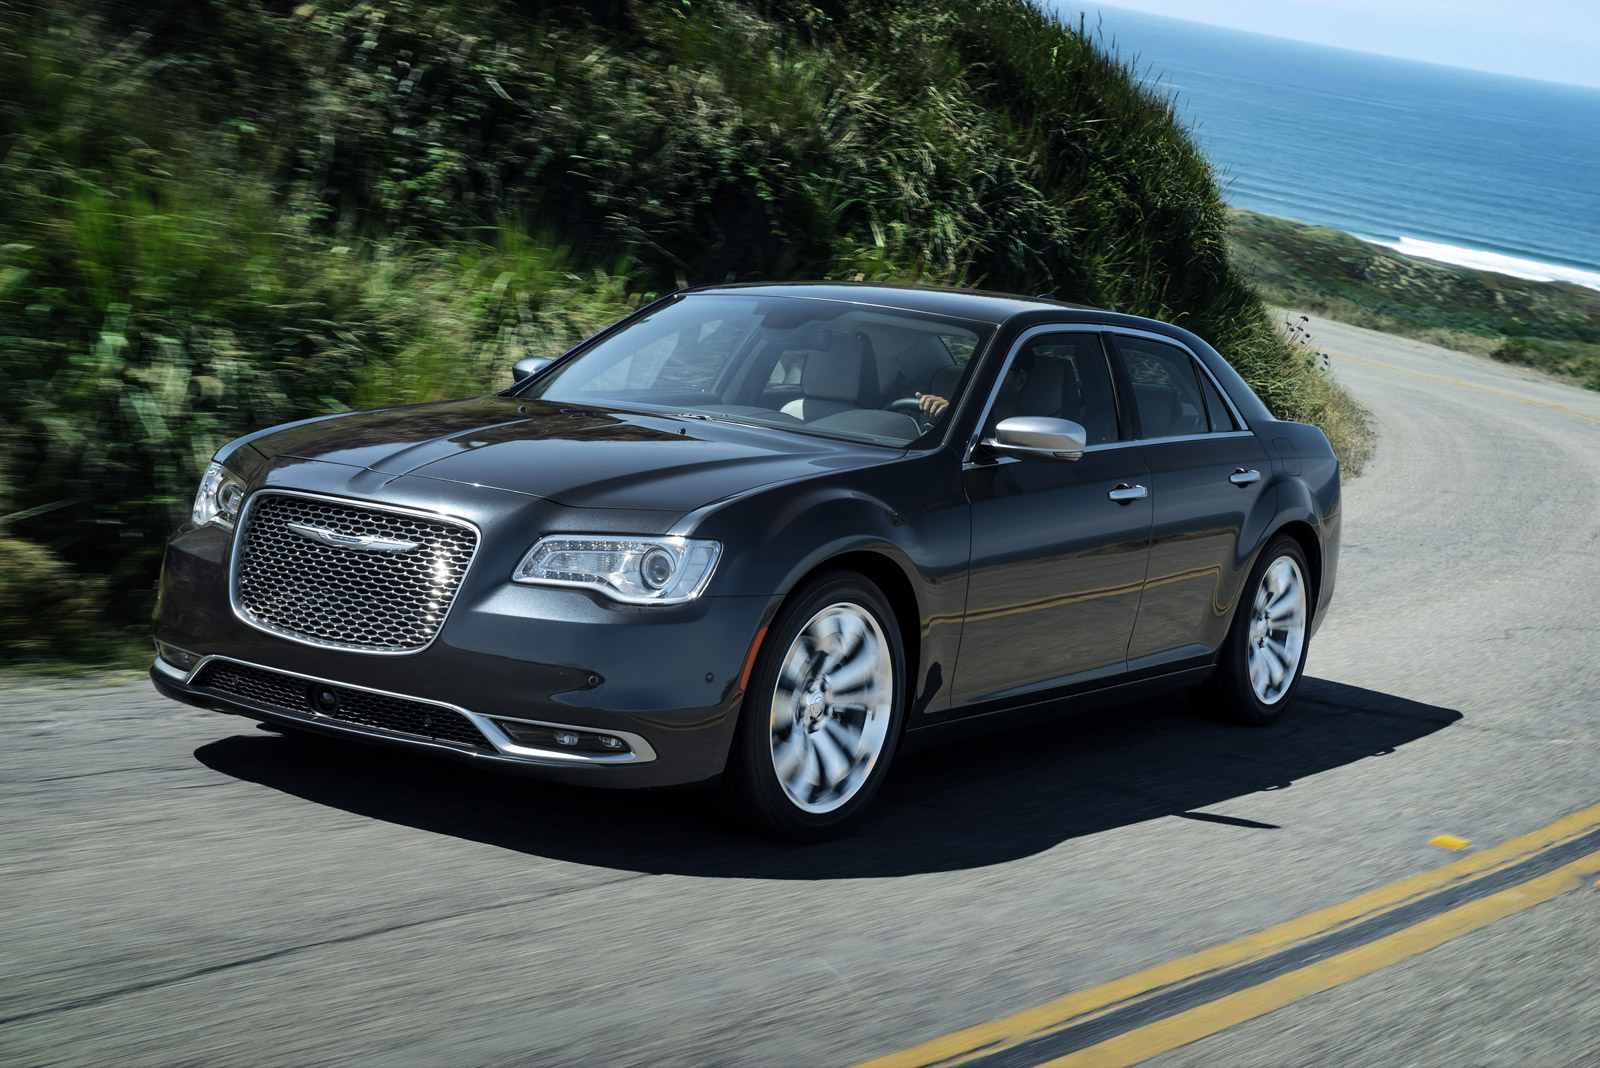 Chrysler 300 2016 Hemi >> New and Used Chrysler 300: Prices, Photos, Reviews, Specs - The Car Connection